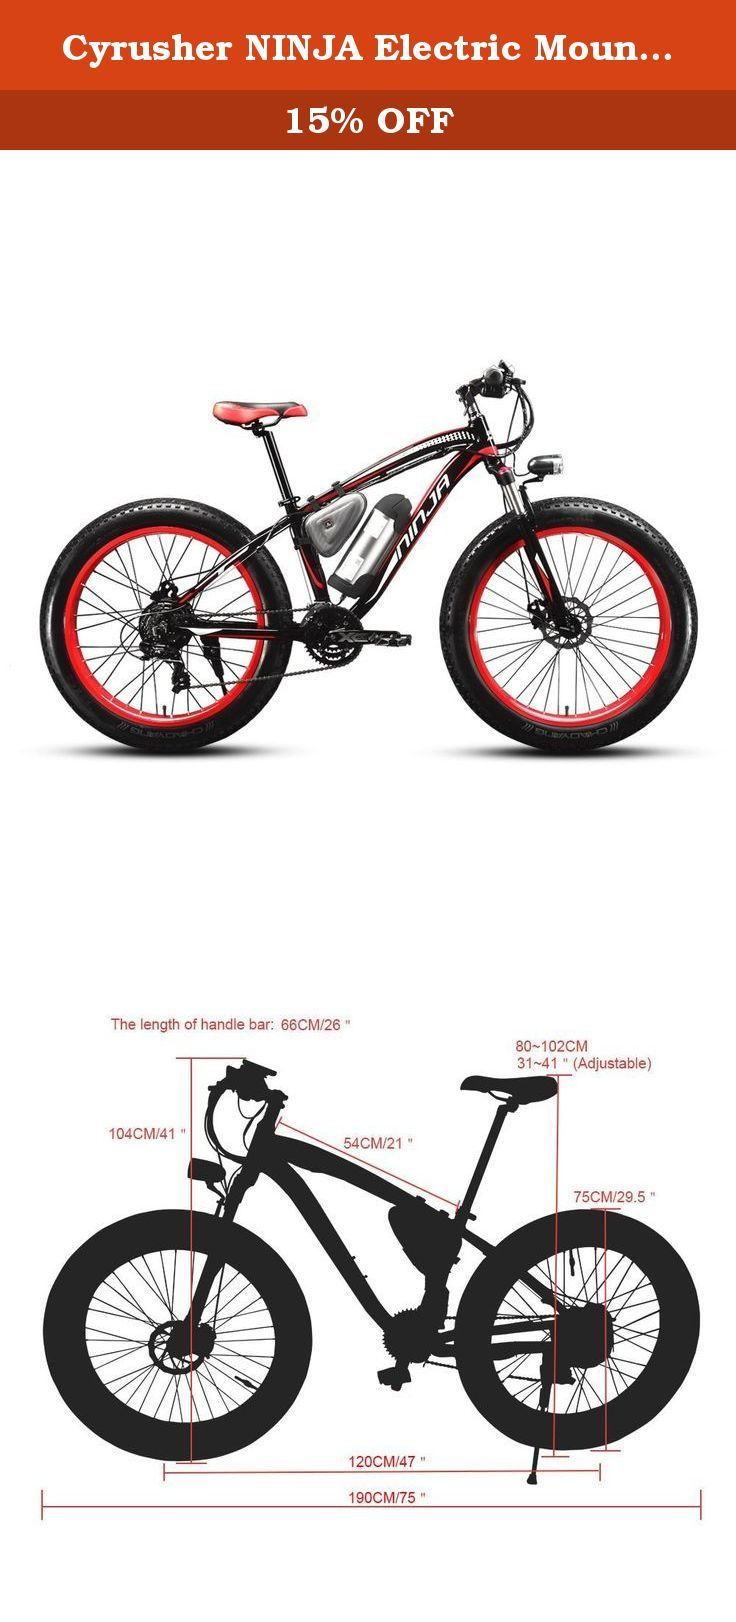 ce2c12a28c1 Cyrusher NINJA Electric Mountain Bike Fat Tire with Lithium Battery and  Battery Charger. Cyrusher NINJA